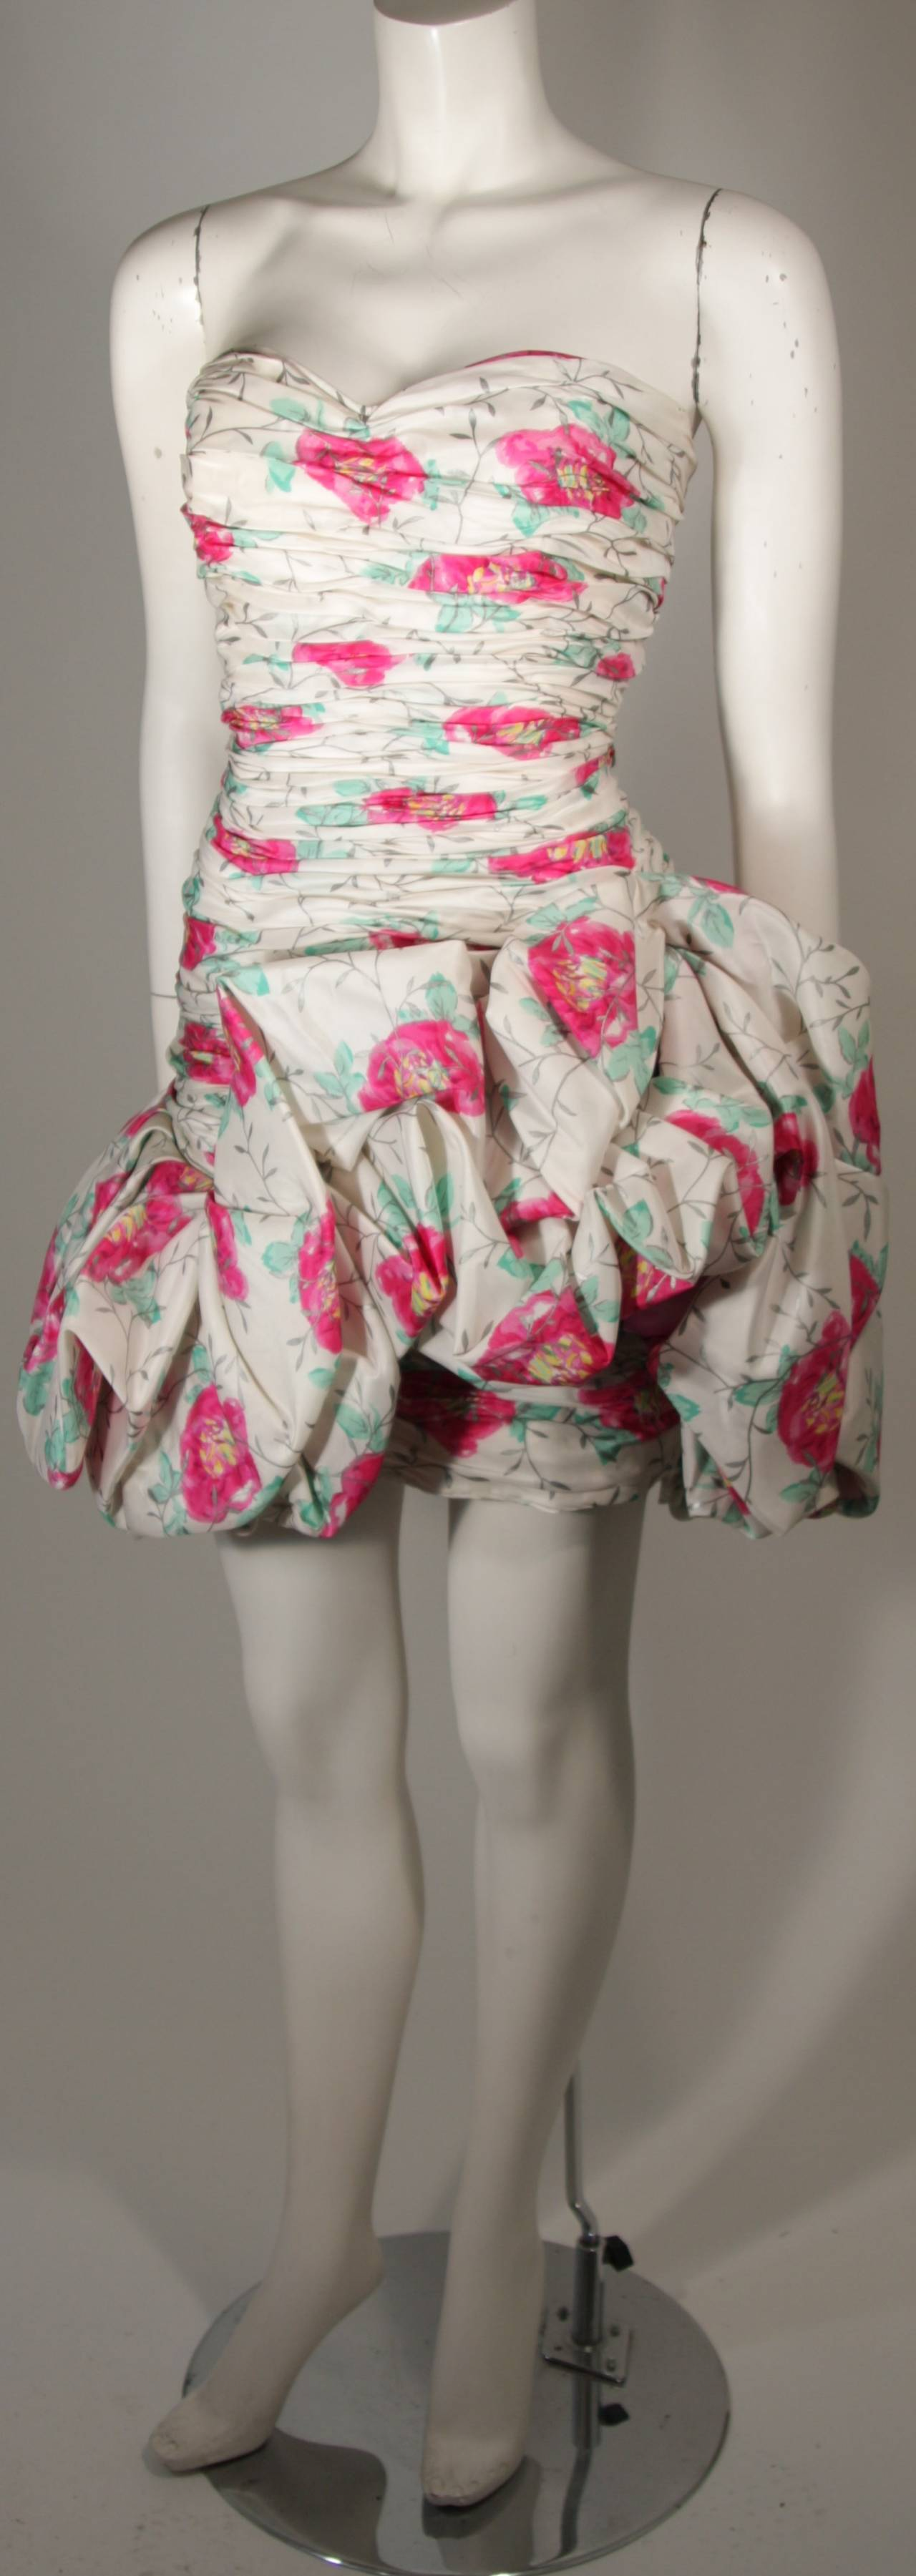 Gray Ungaro White Silk Cocktail Dress with Pink & Green Floral Design Size 8 For Sale